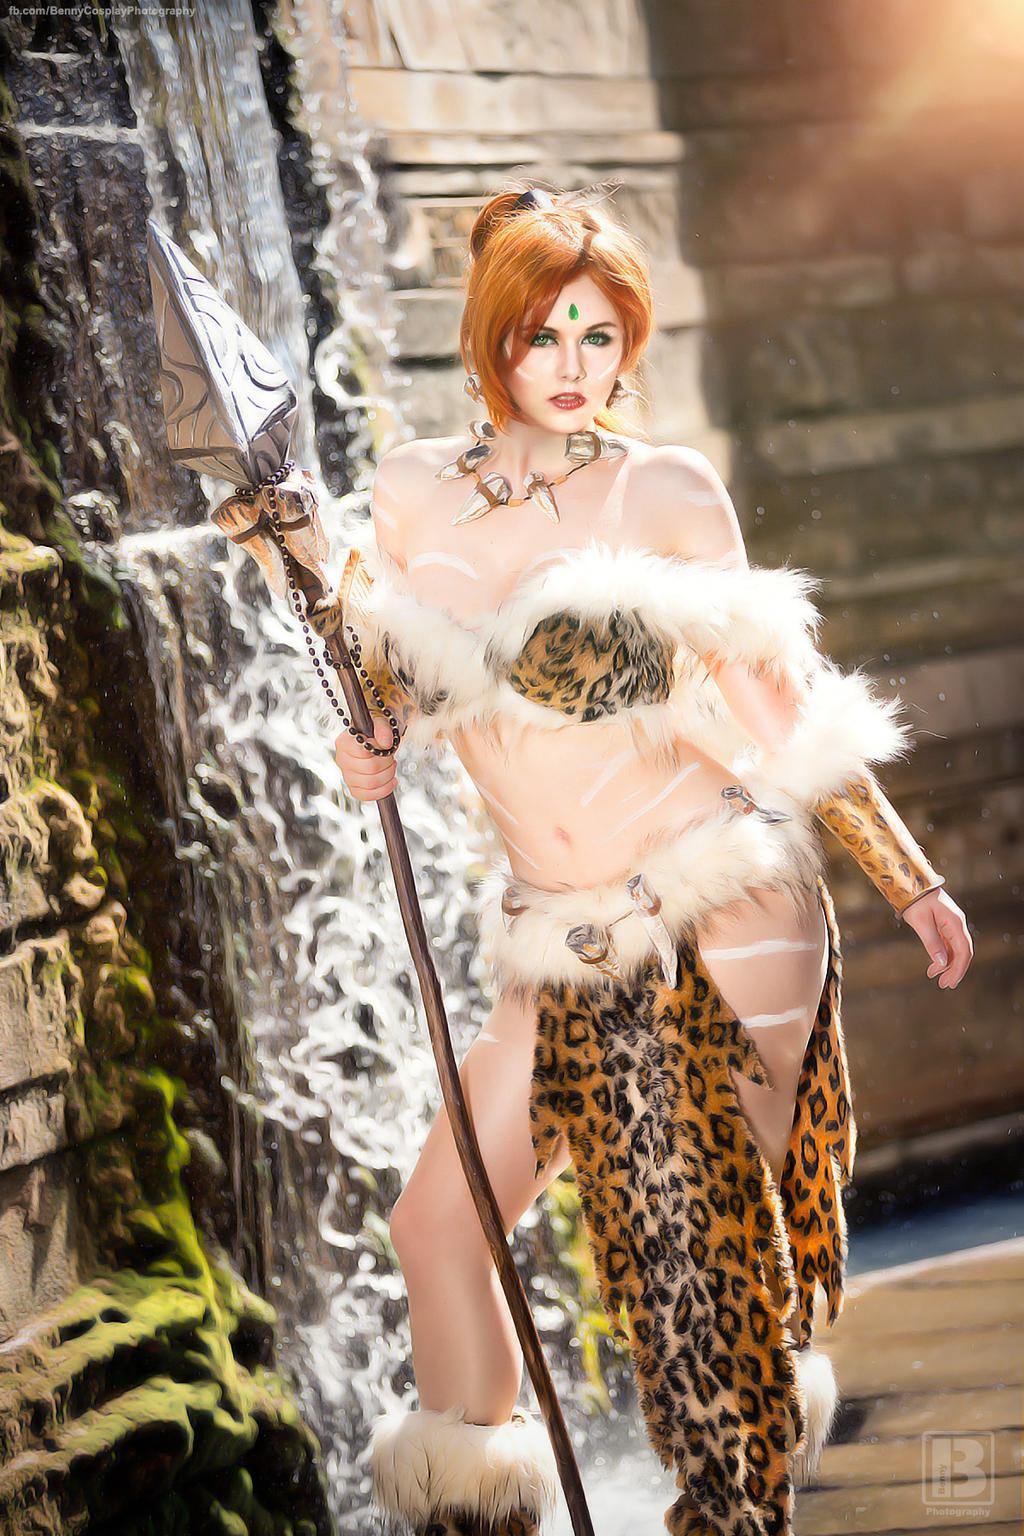 Nidalee Cosplay I love playing cat and mouse